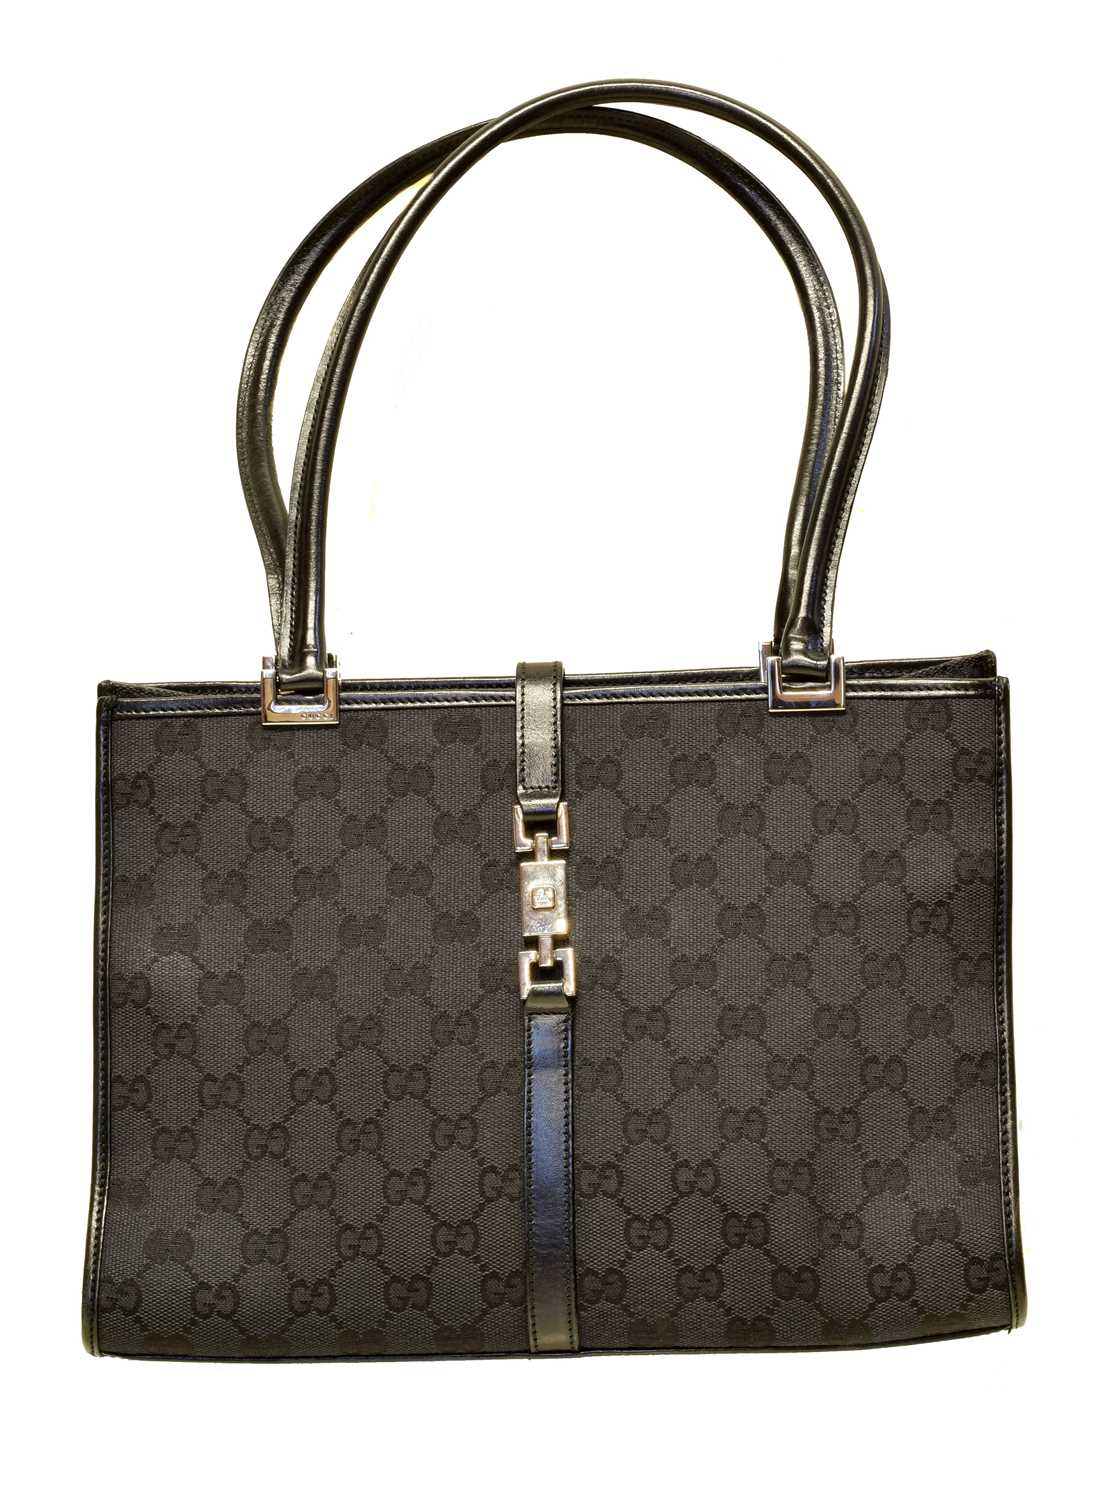 A Gucci Square Jackie Bag, the black monogrammed canvas exterior with black leather strap and ruthenium hardware, serial no. 002/1073/002214.